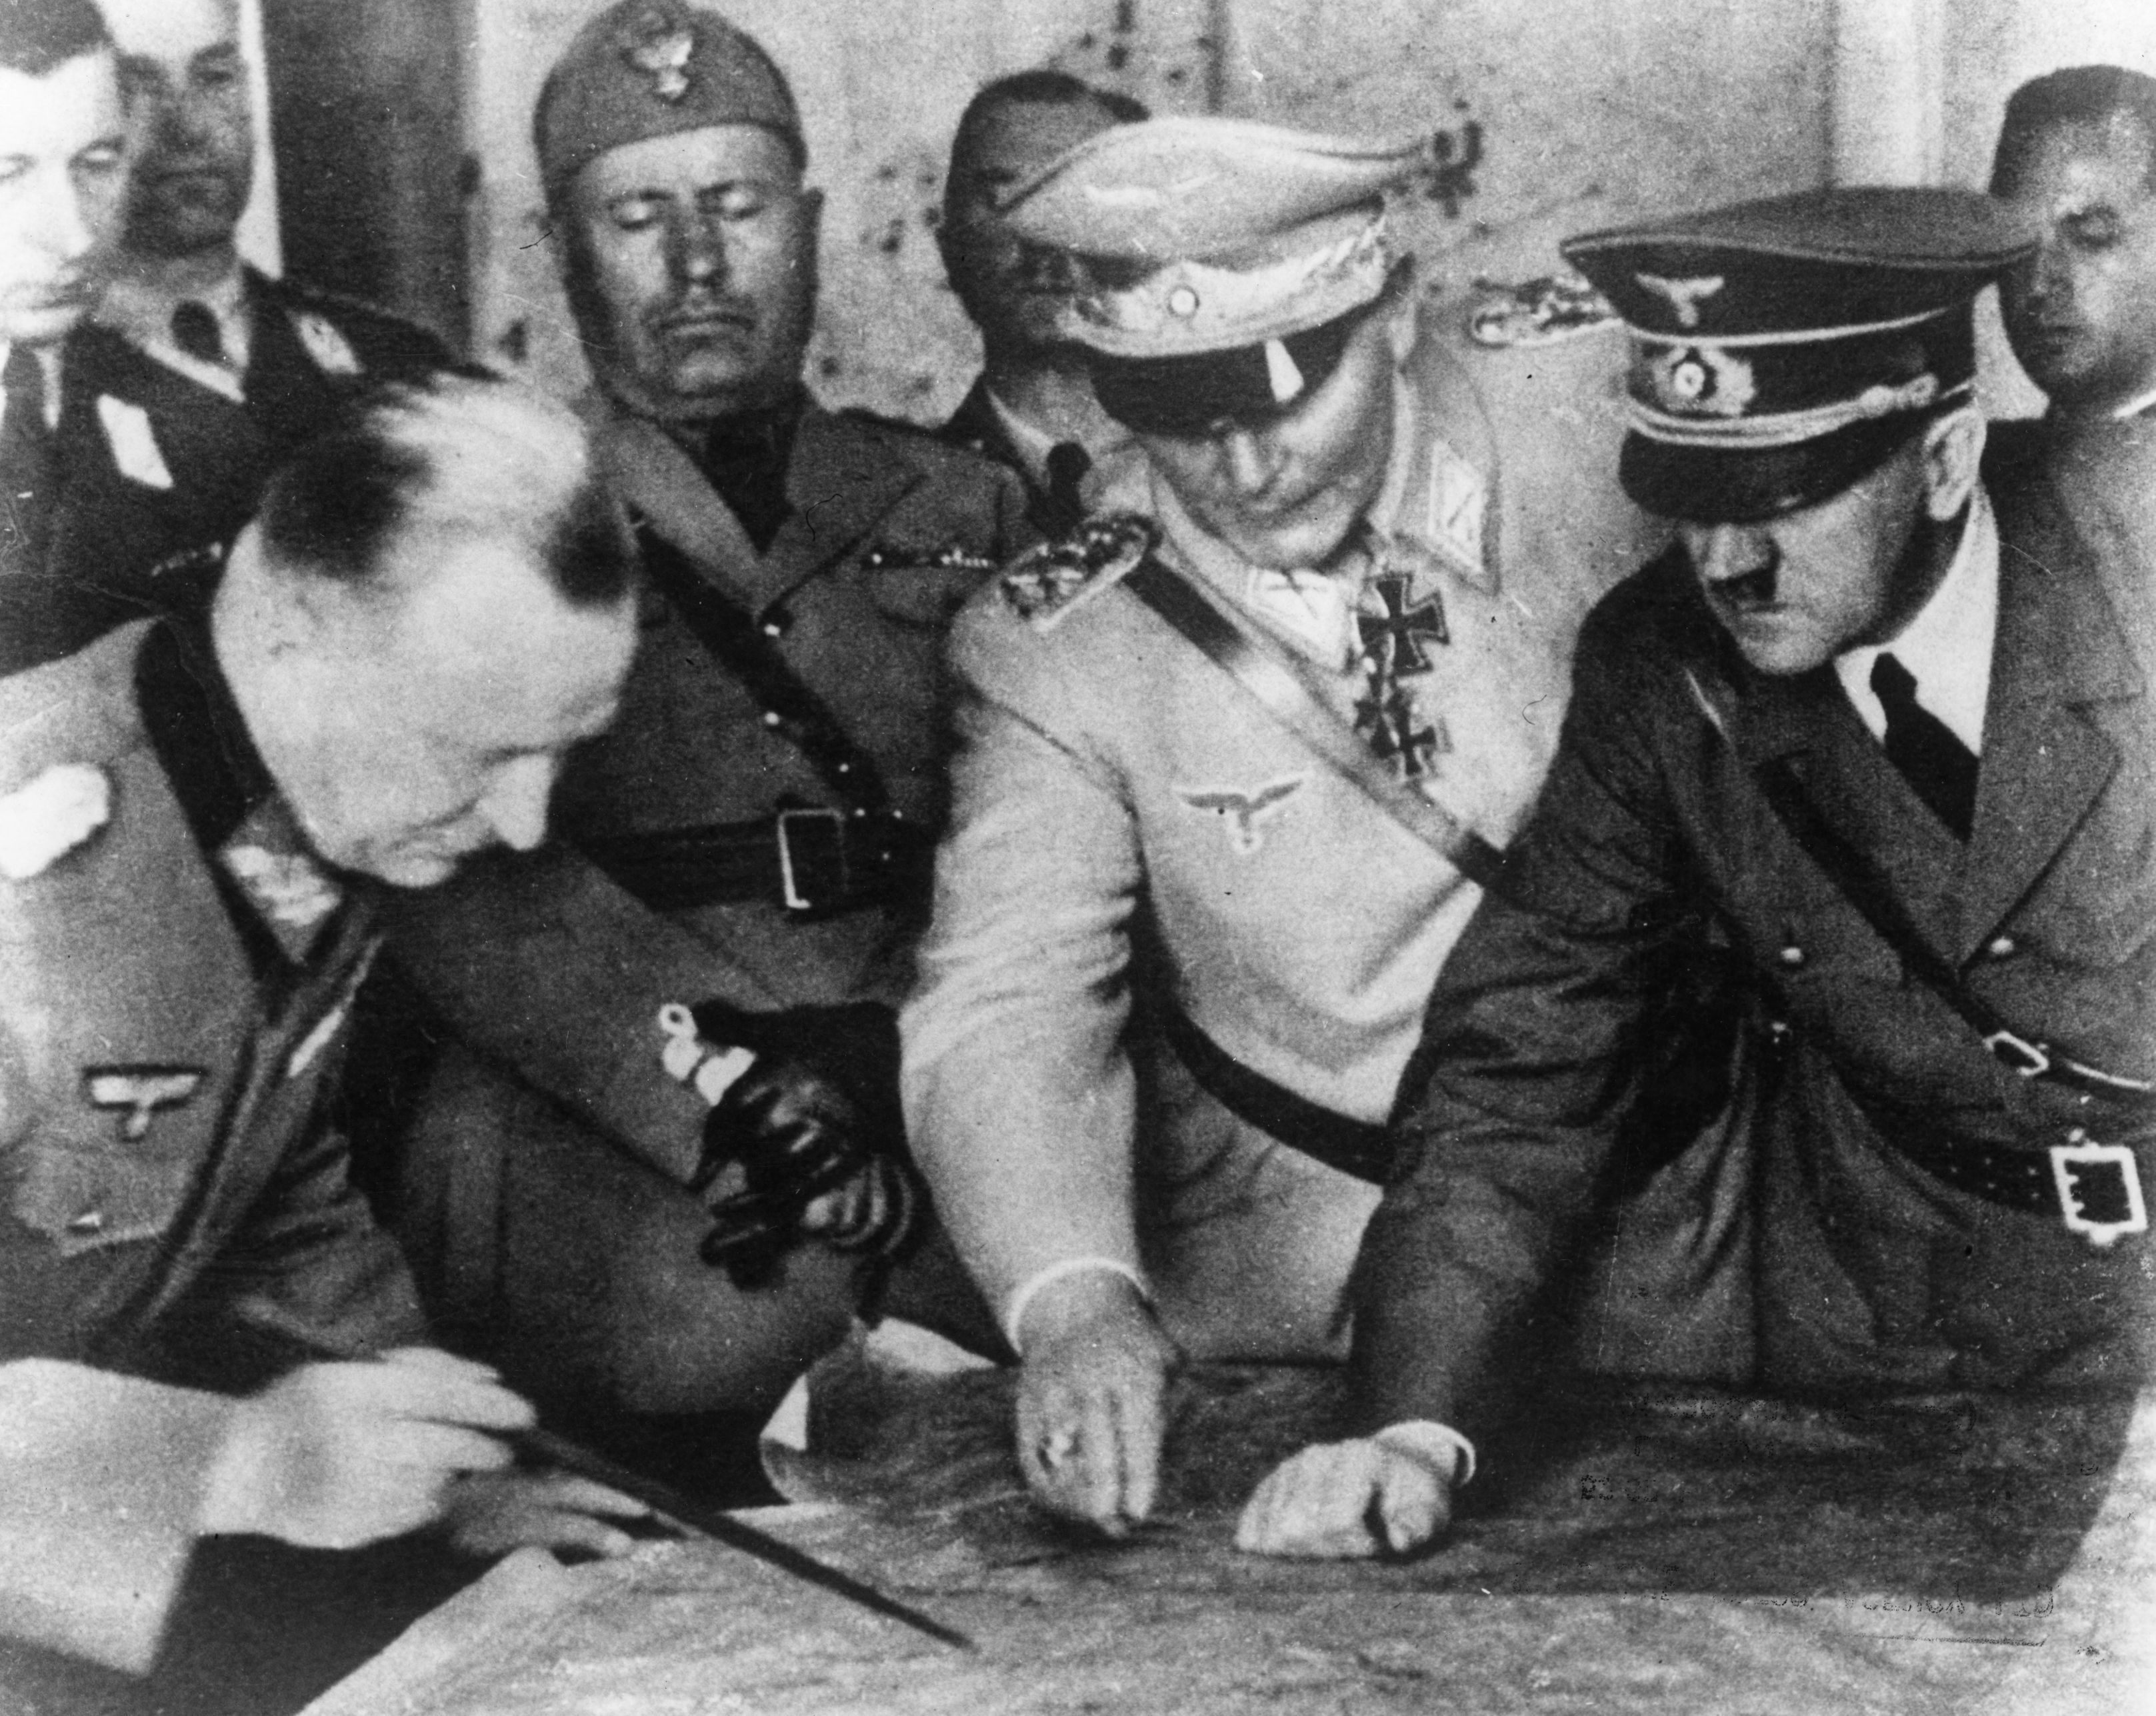 Adolf Hitler (1889 - 1945), Hermann Goering (1893 - 1946) and others plan military strategy at the German Army Headquarters. In the background is Italian dictator Benito Mussolini, circa 1940.